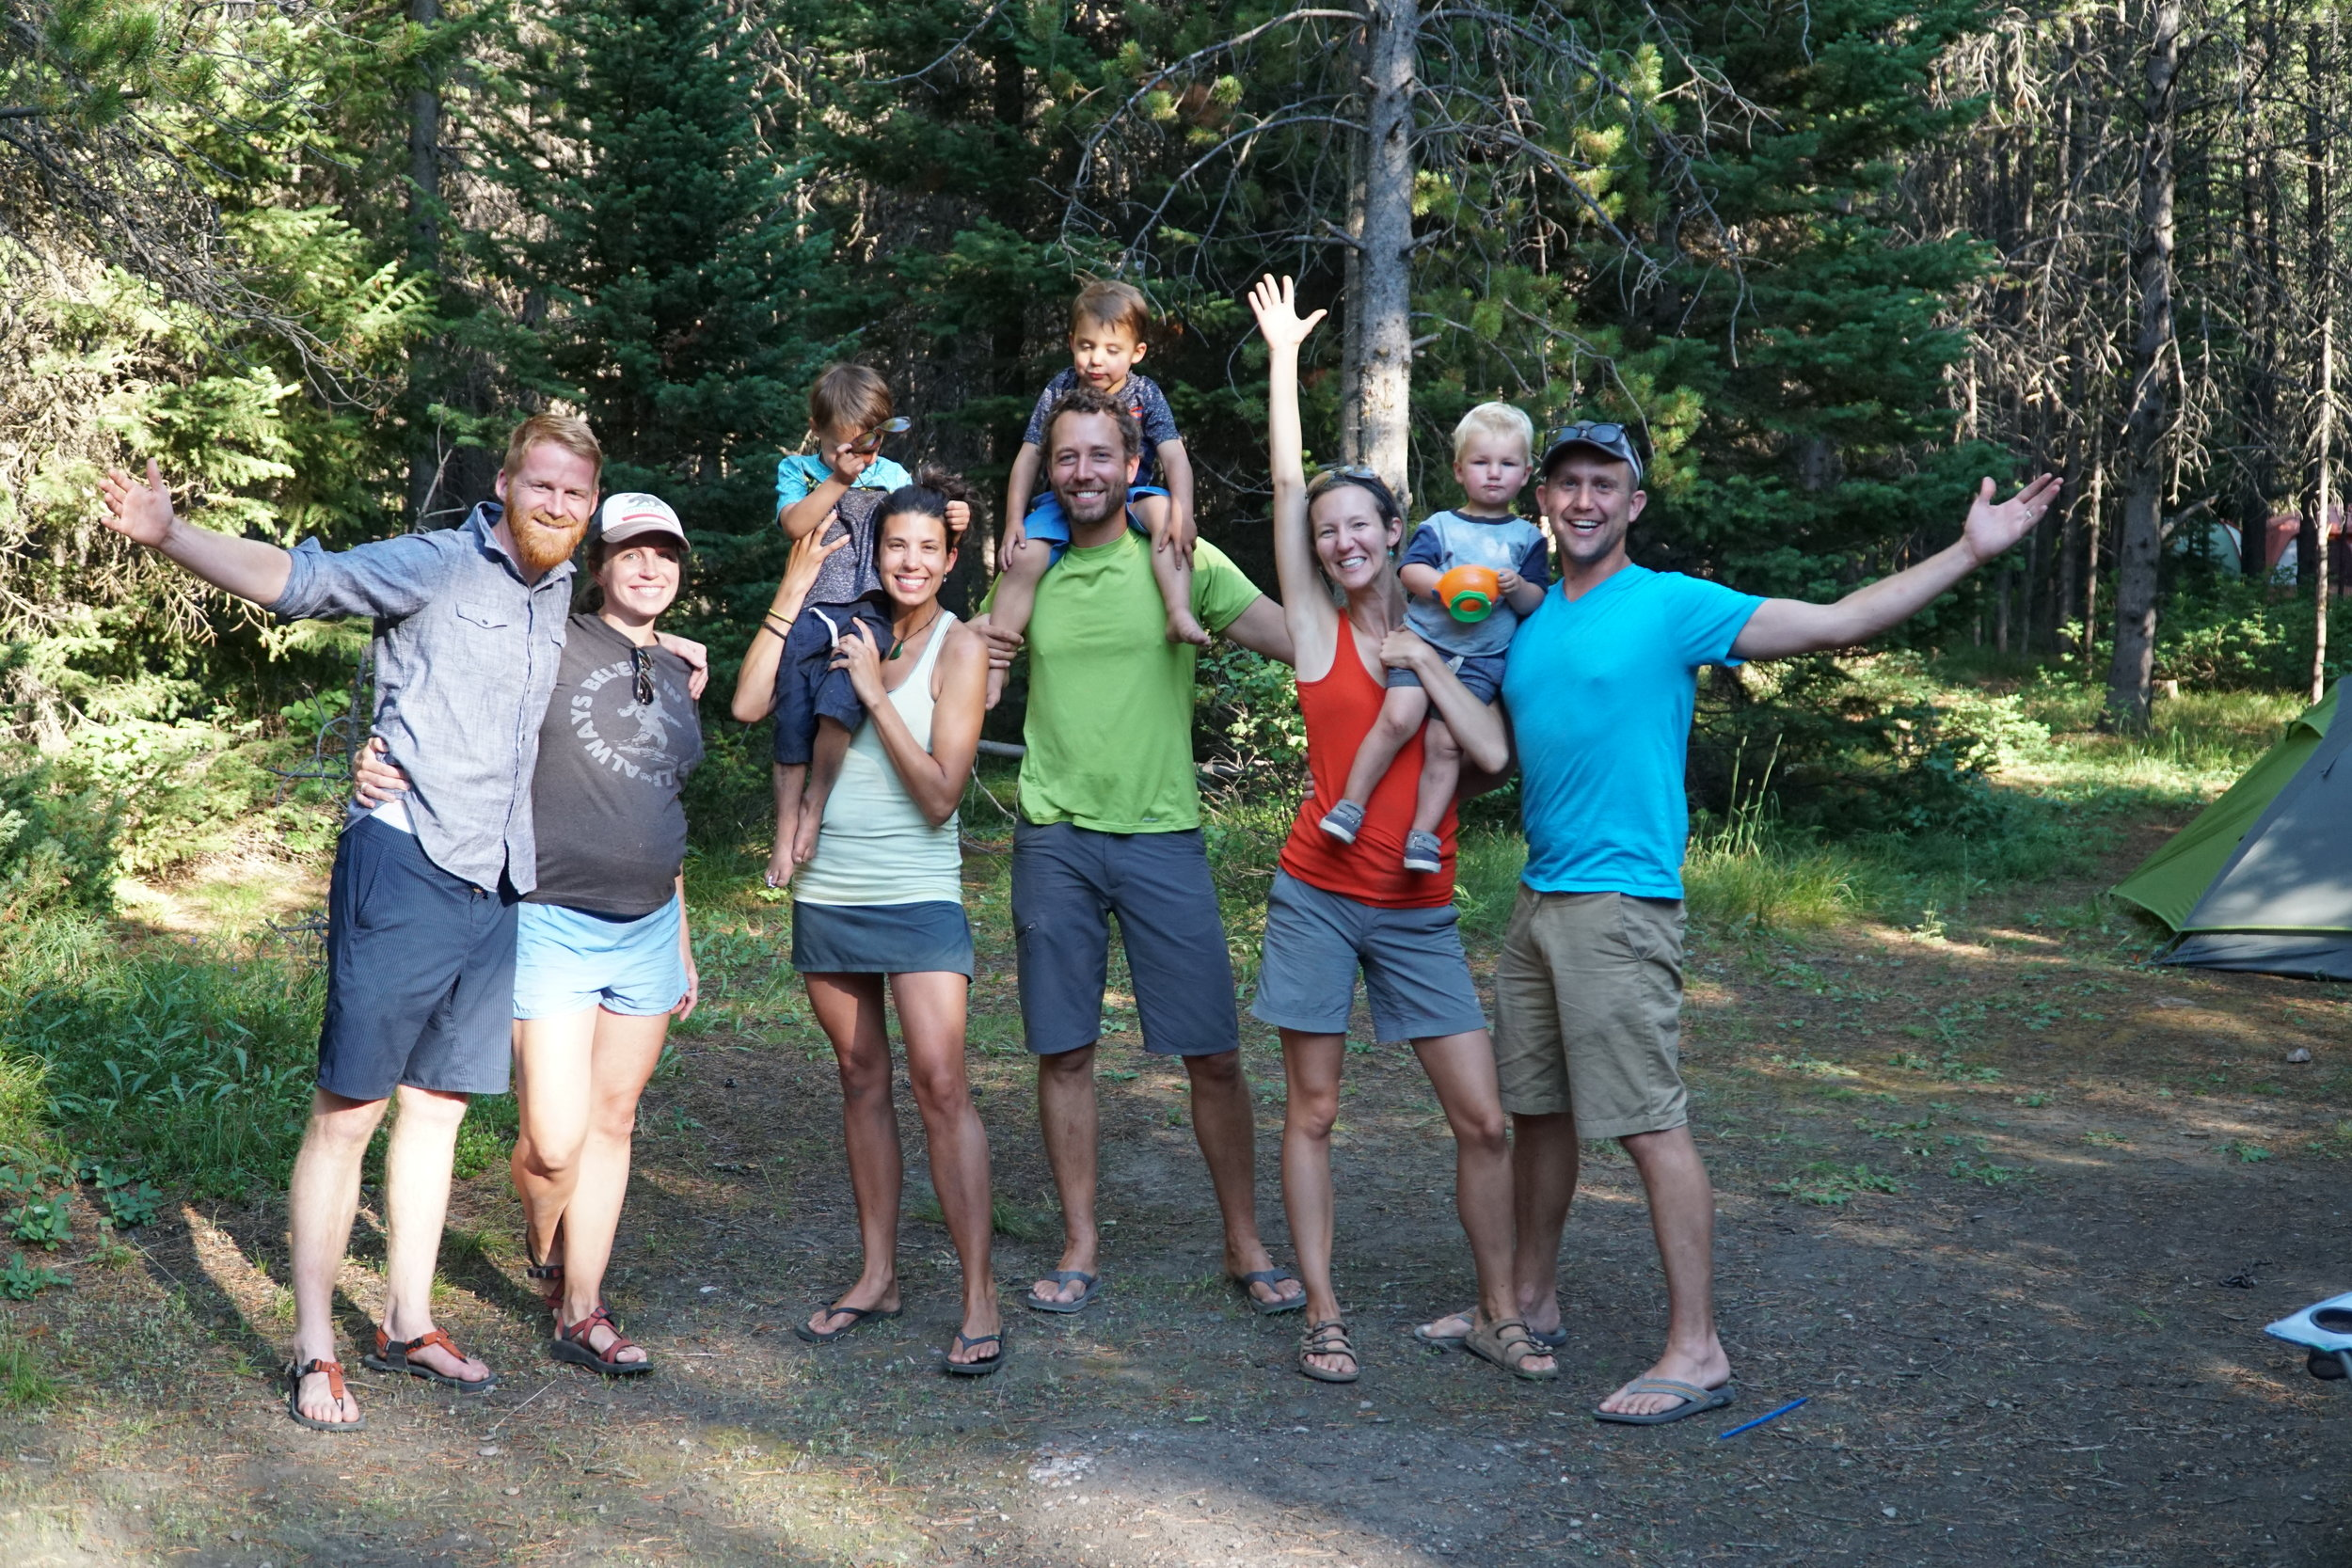 Ellen and Steve stopped by our campground on their way to Durango, Colorado.